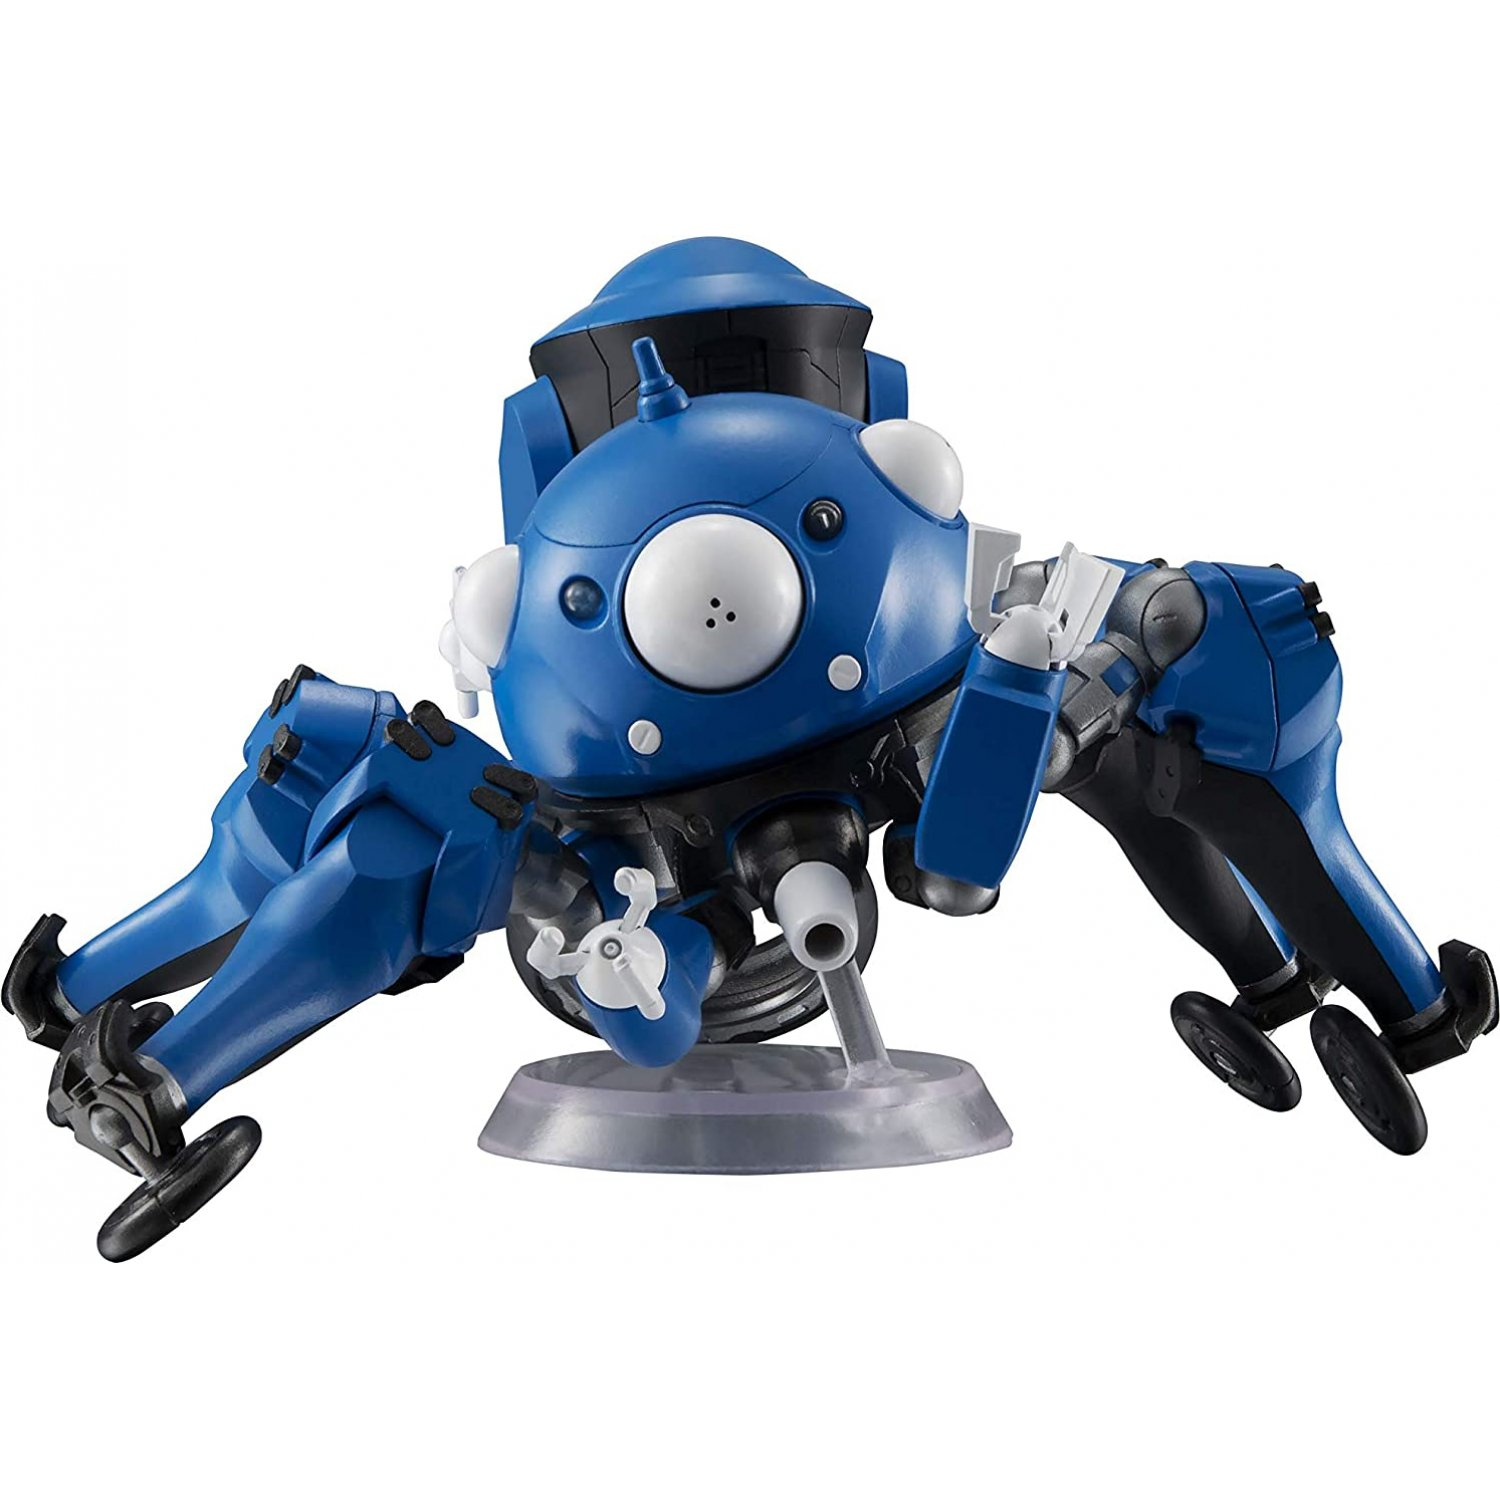 Robot Spirits Side Ghost Ghost In The Shell Sac 2045 Tachikoma Ghost In The Shell Sac 2045